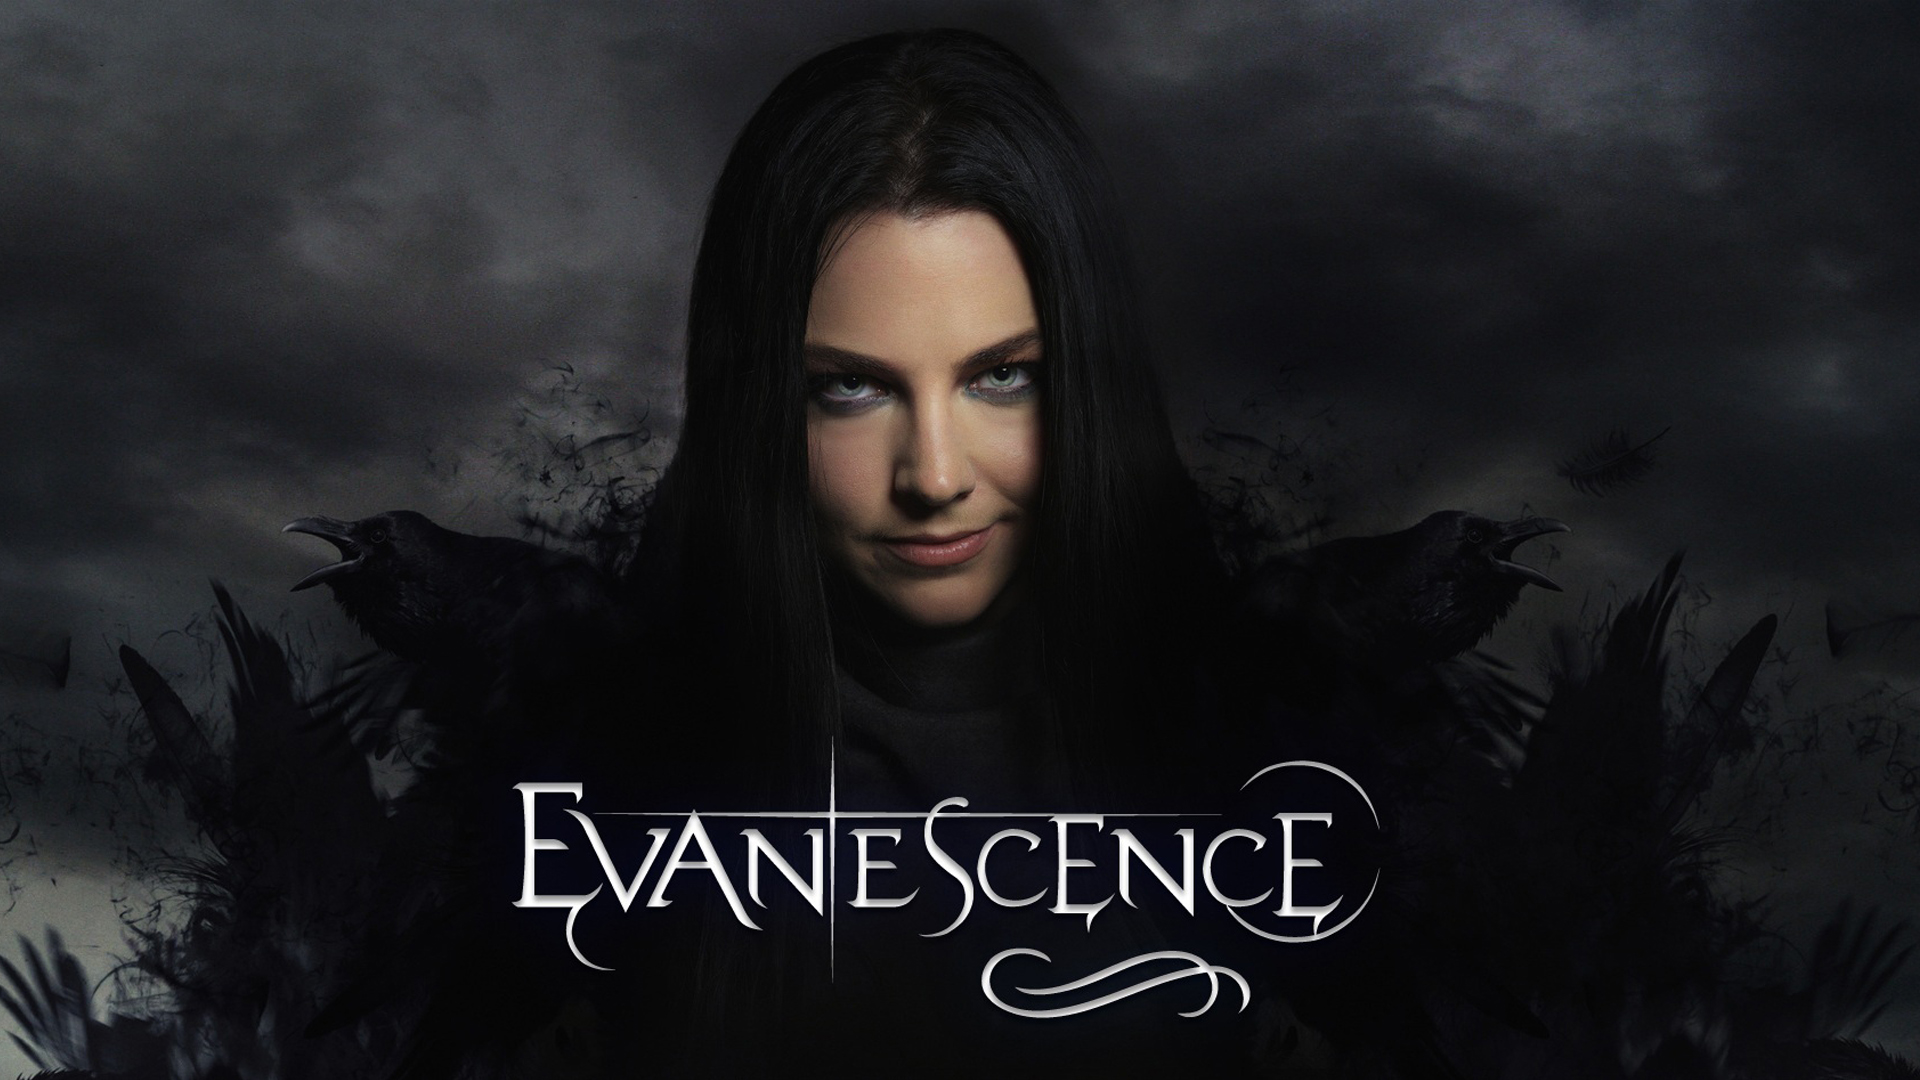 Evanescence Wallpapers HD 1920x1080